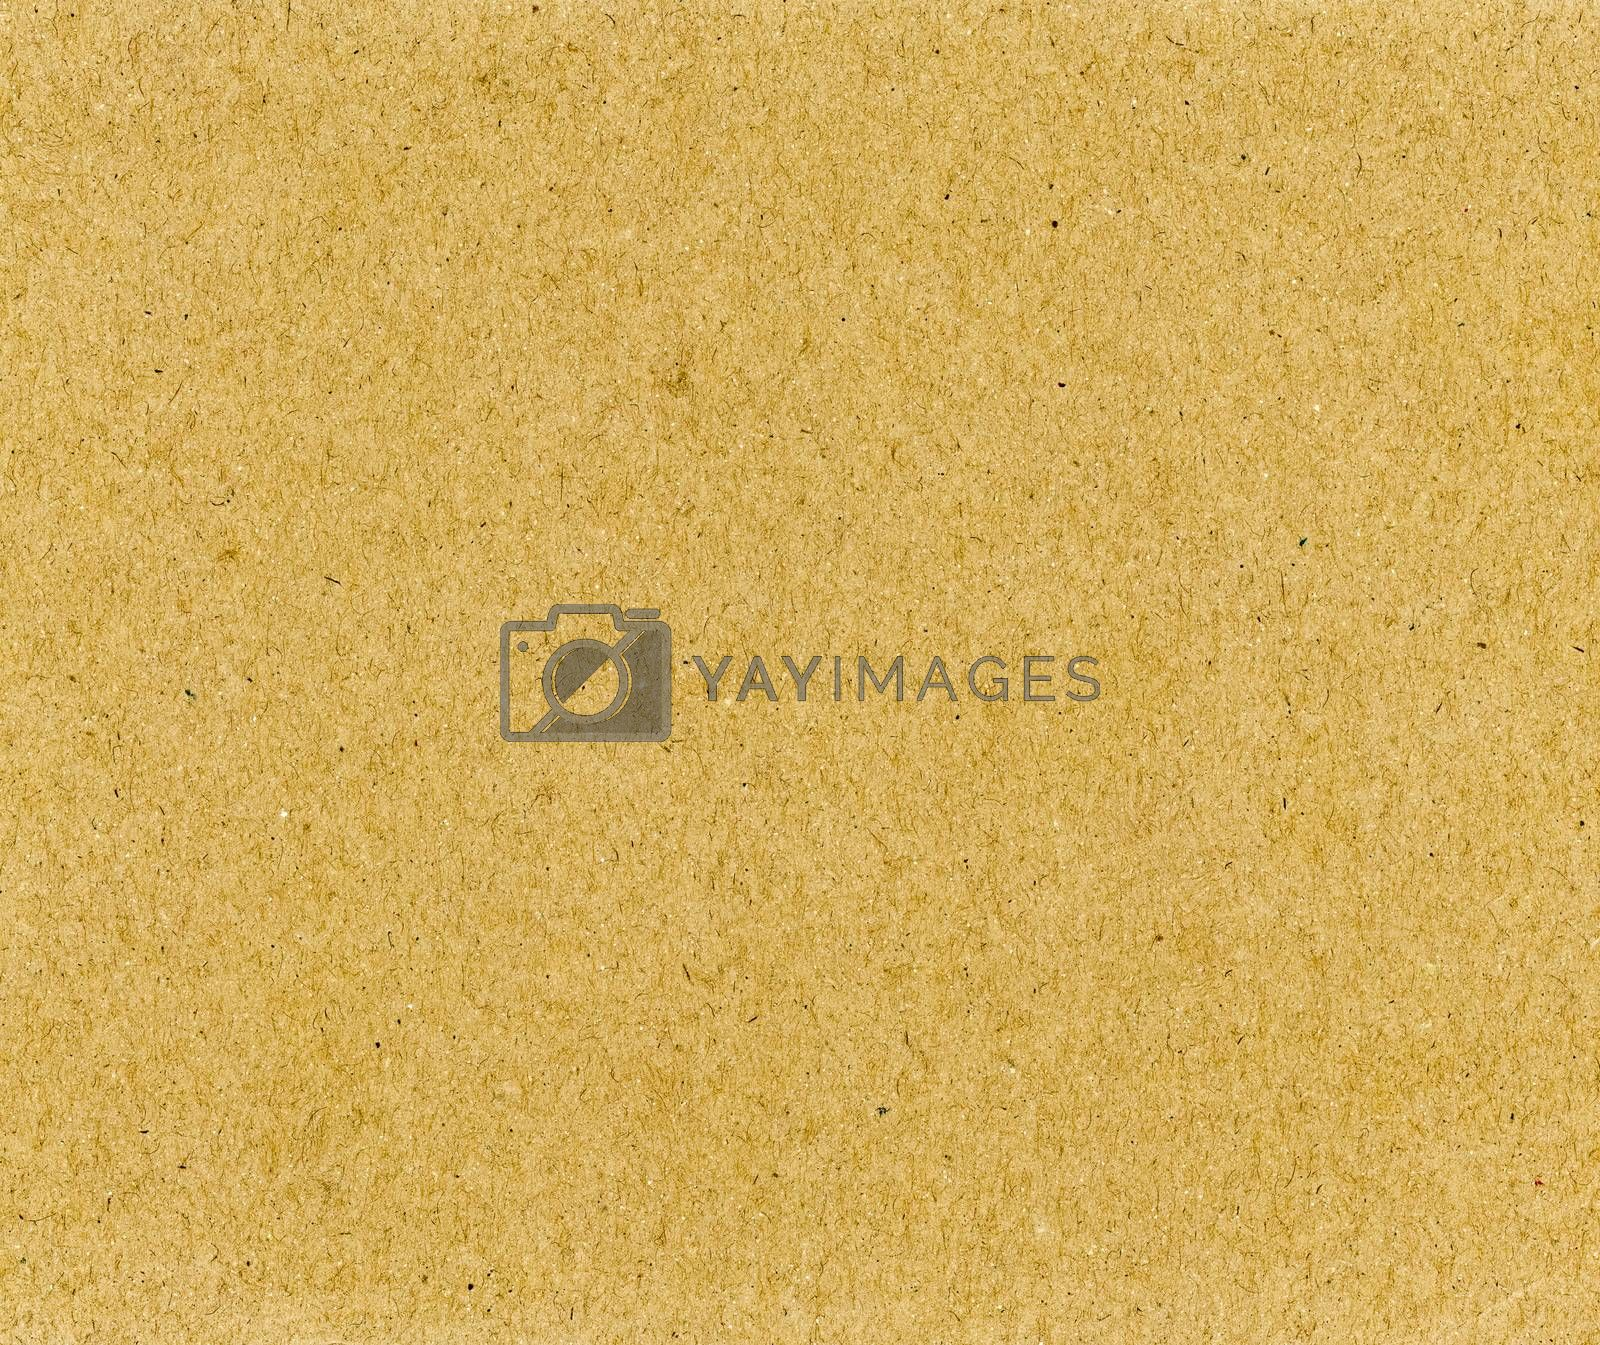 Royalty free image of brown paper texture background by claudiodivizia